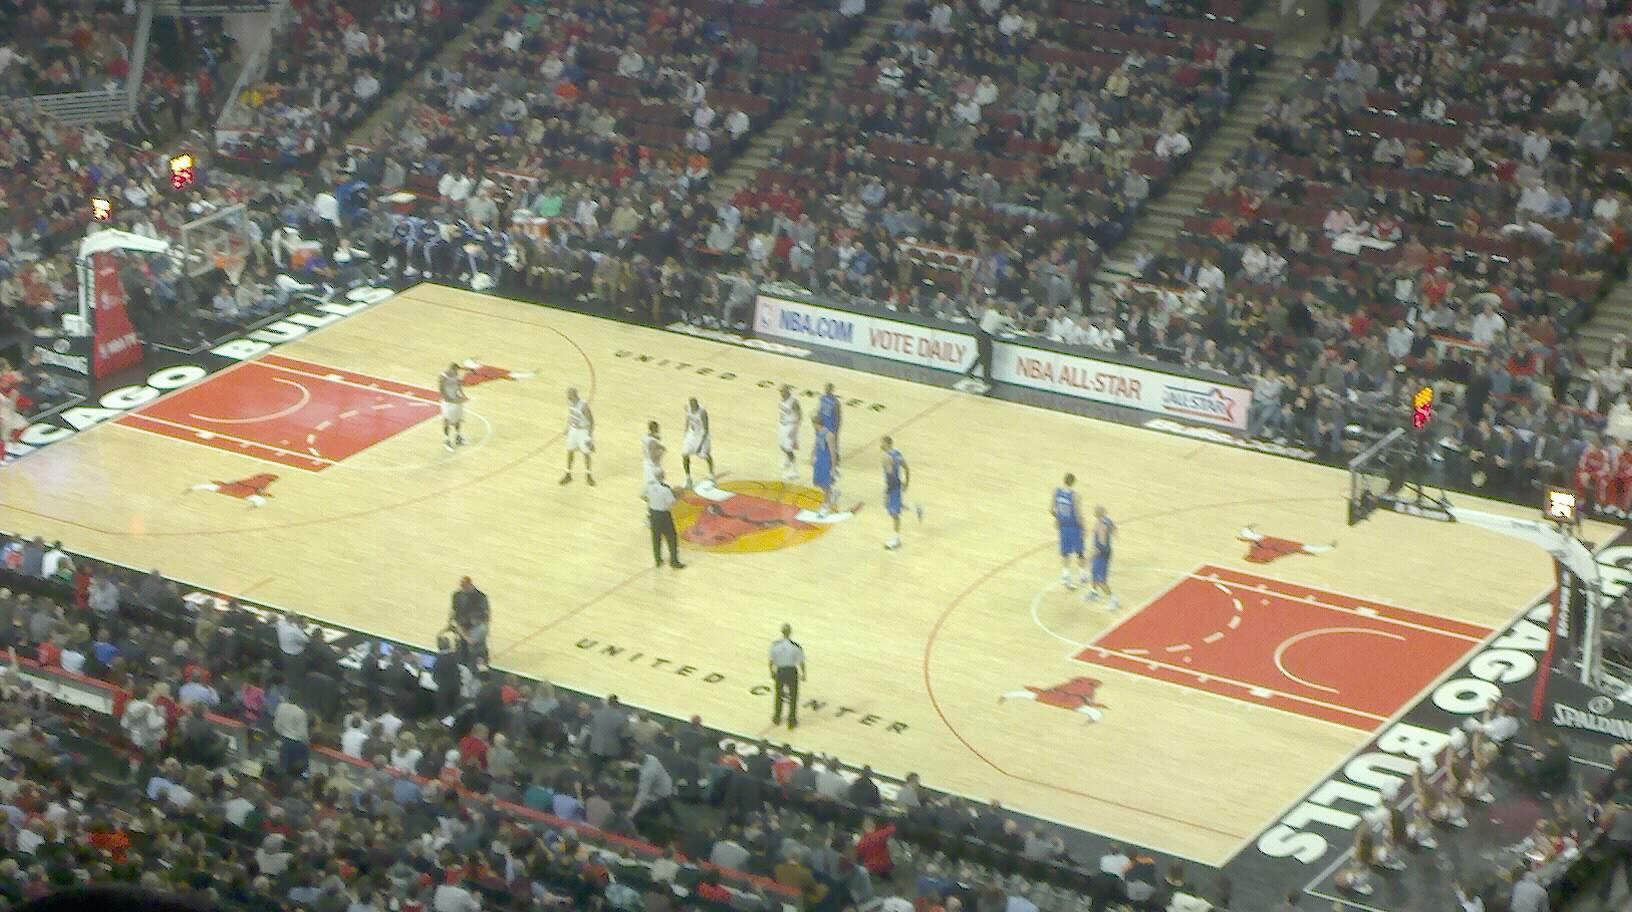 United Center Section 314 Row 15 Seat 19